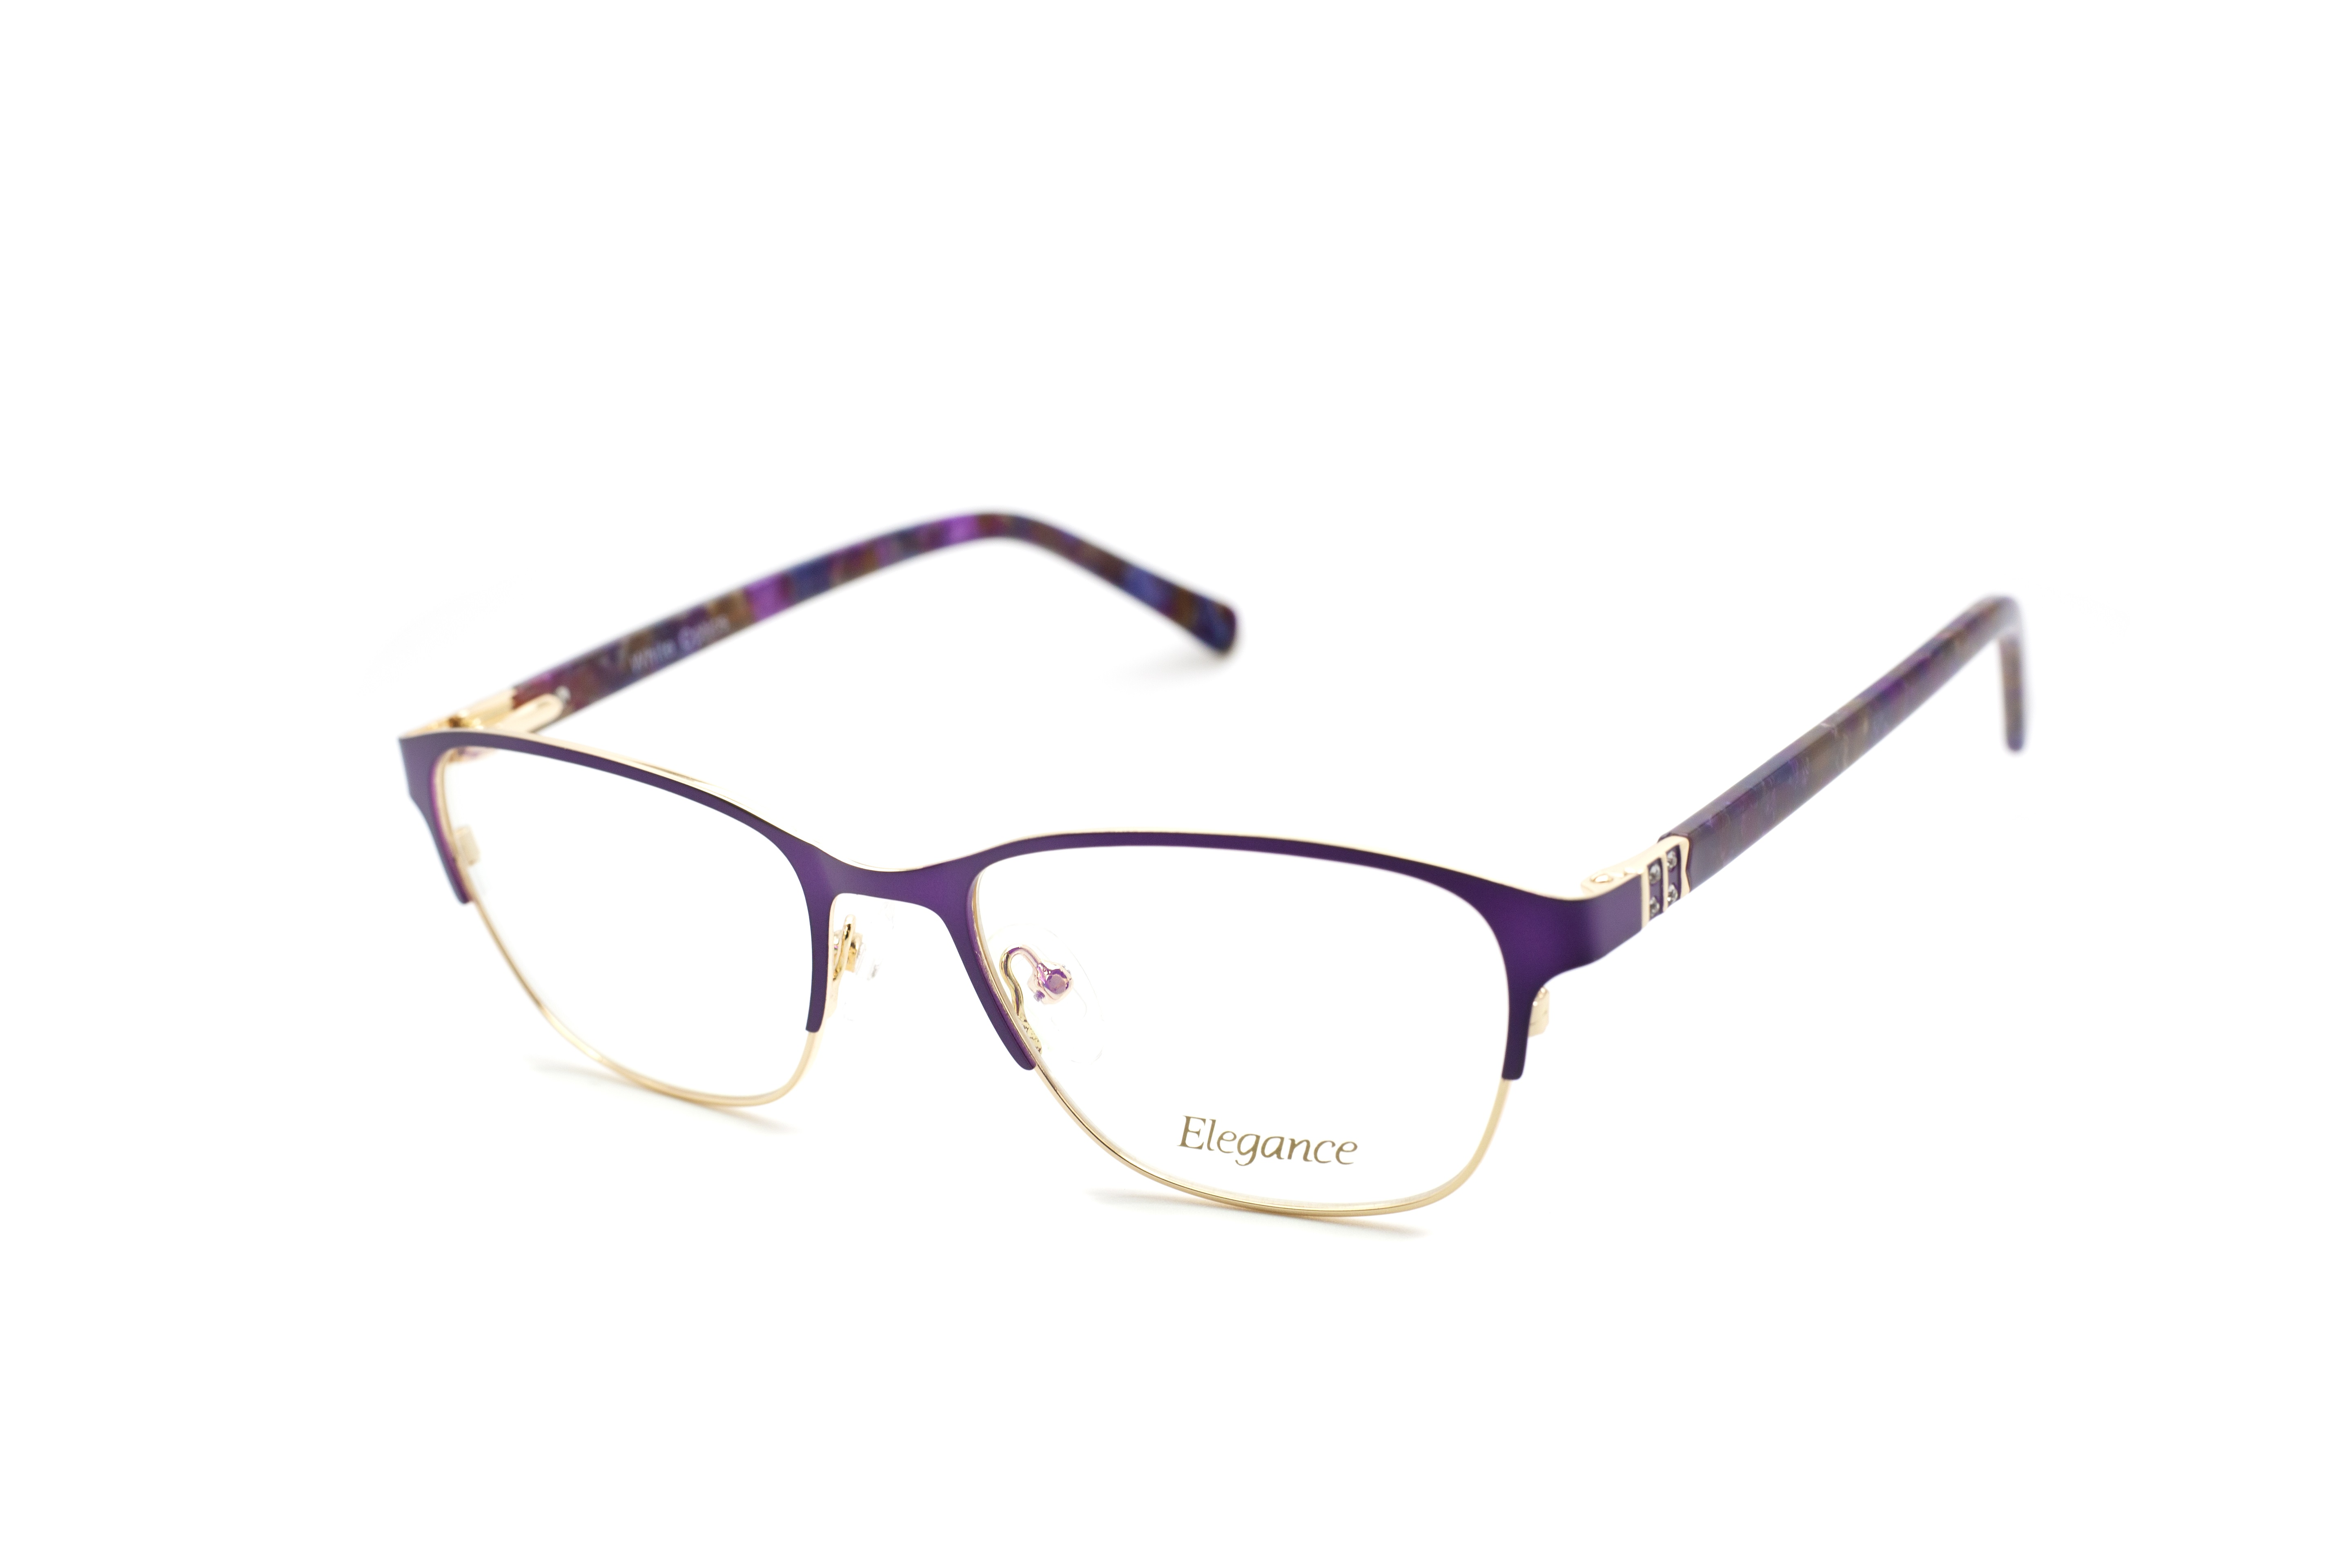 Elegance 2050 - Purple (4 - Dark Purple/Gold)